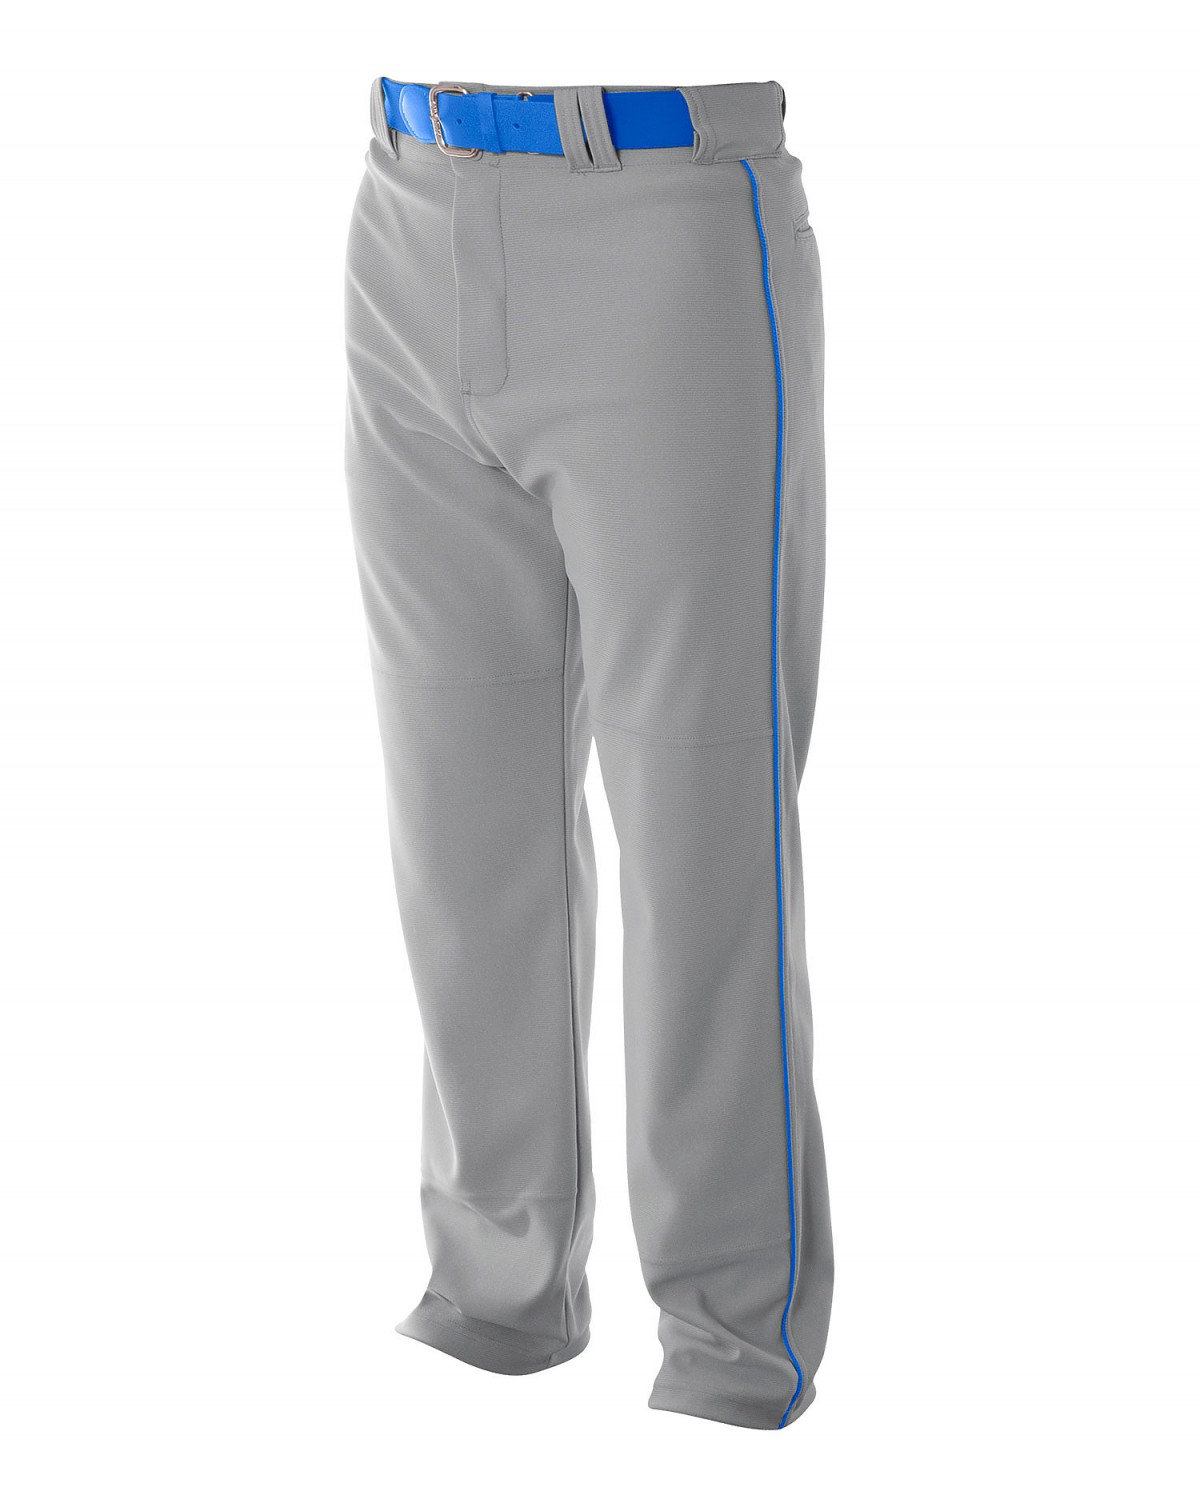 BG2126 Badger Sport WHITE/GRAPHITE